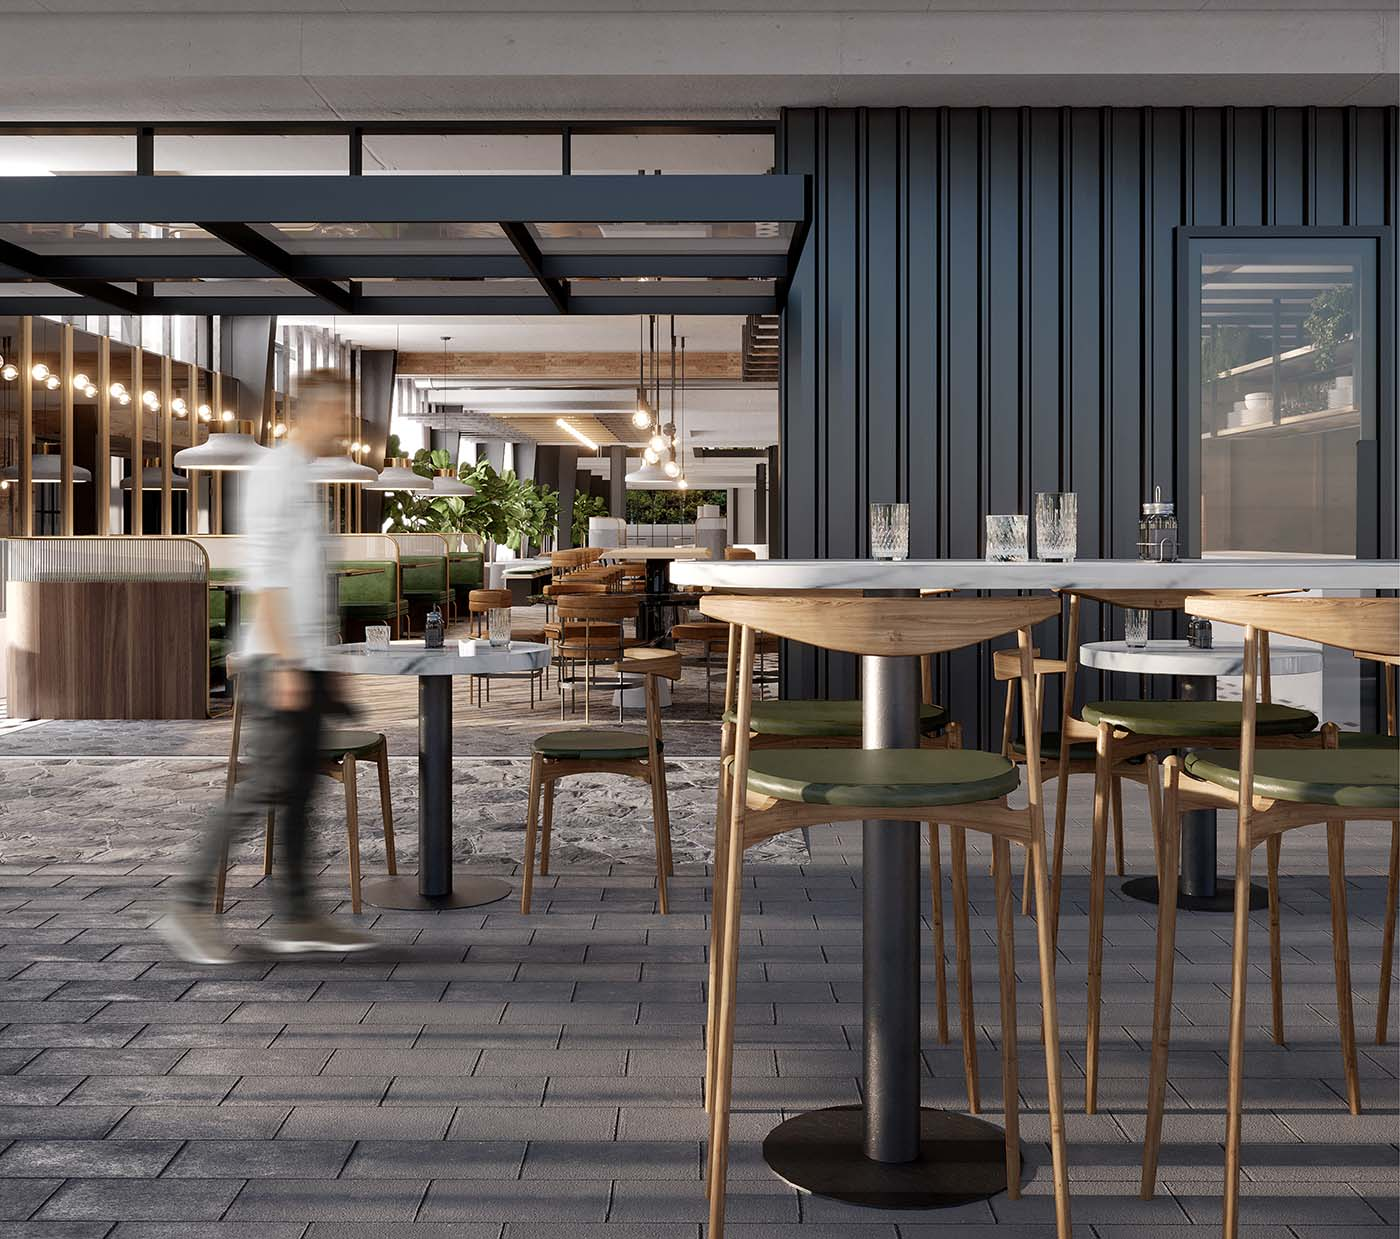 Biophilic cafe design in Sydney showing tables with chairs and a man walking.